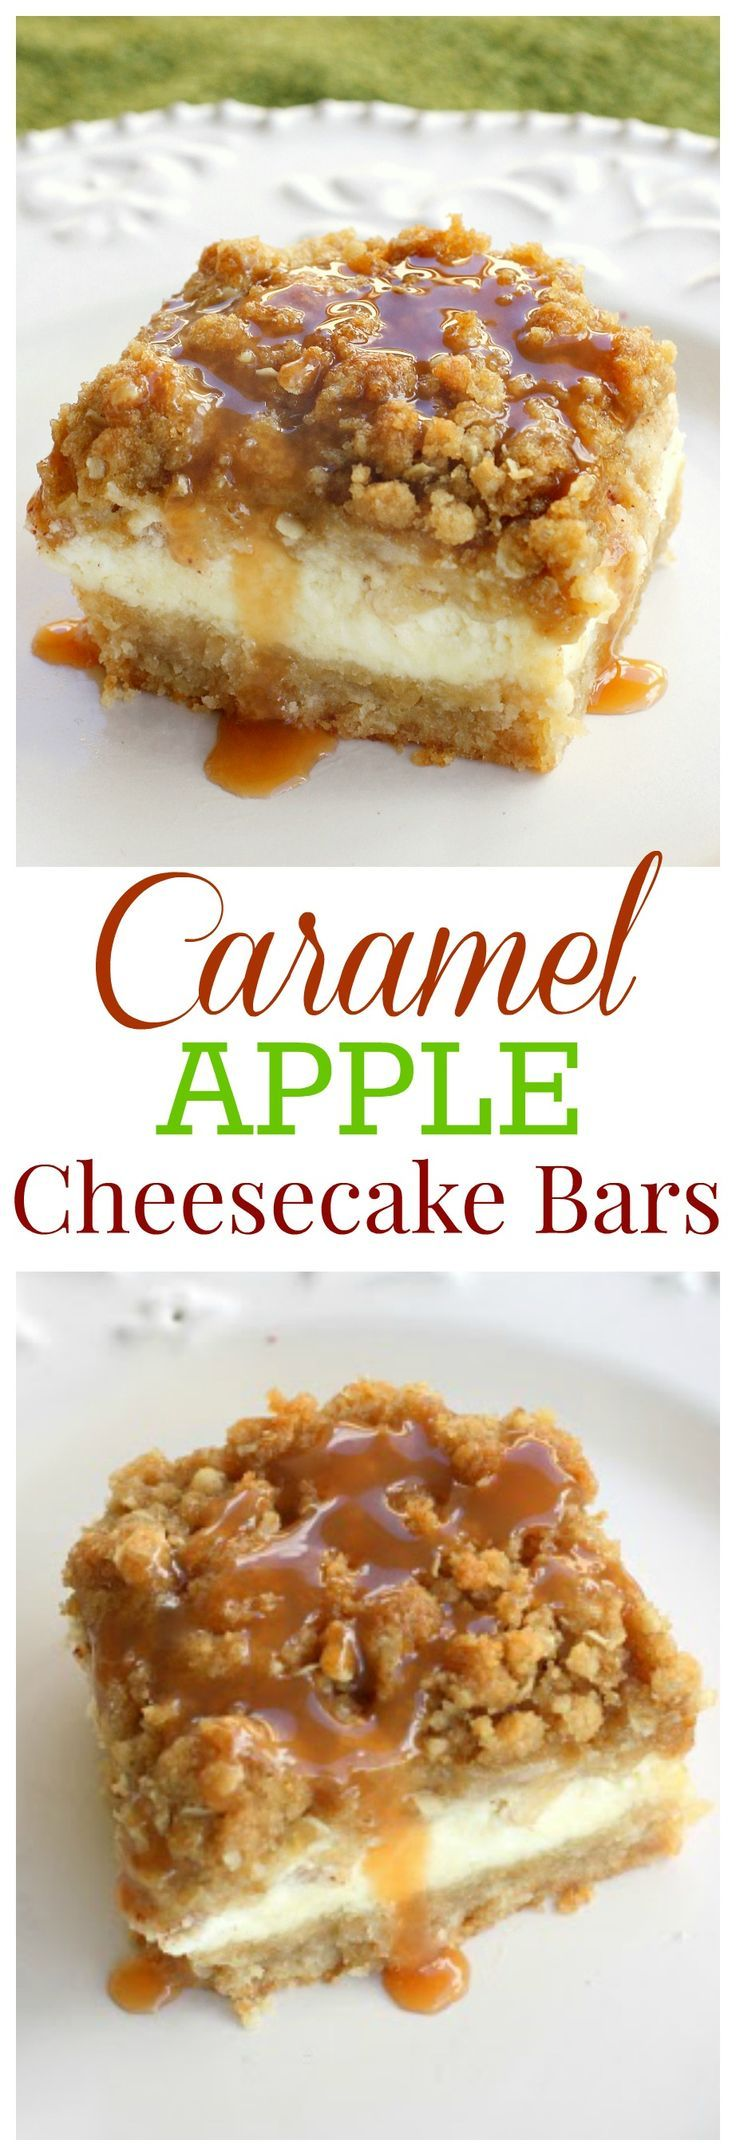 Caramel Apple Cheesecake Bars Recipe - a shortbread crust, a cheesecake layer topped with diced cinnamon apples and a sweet streusel topping.